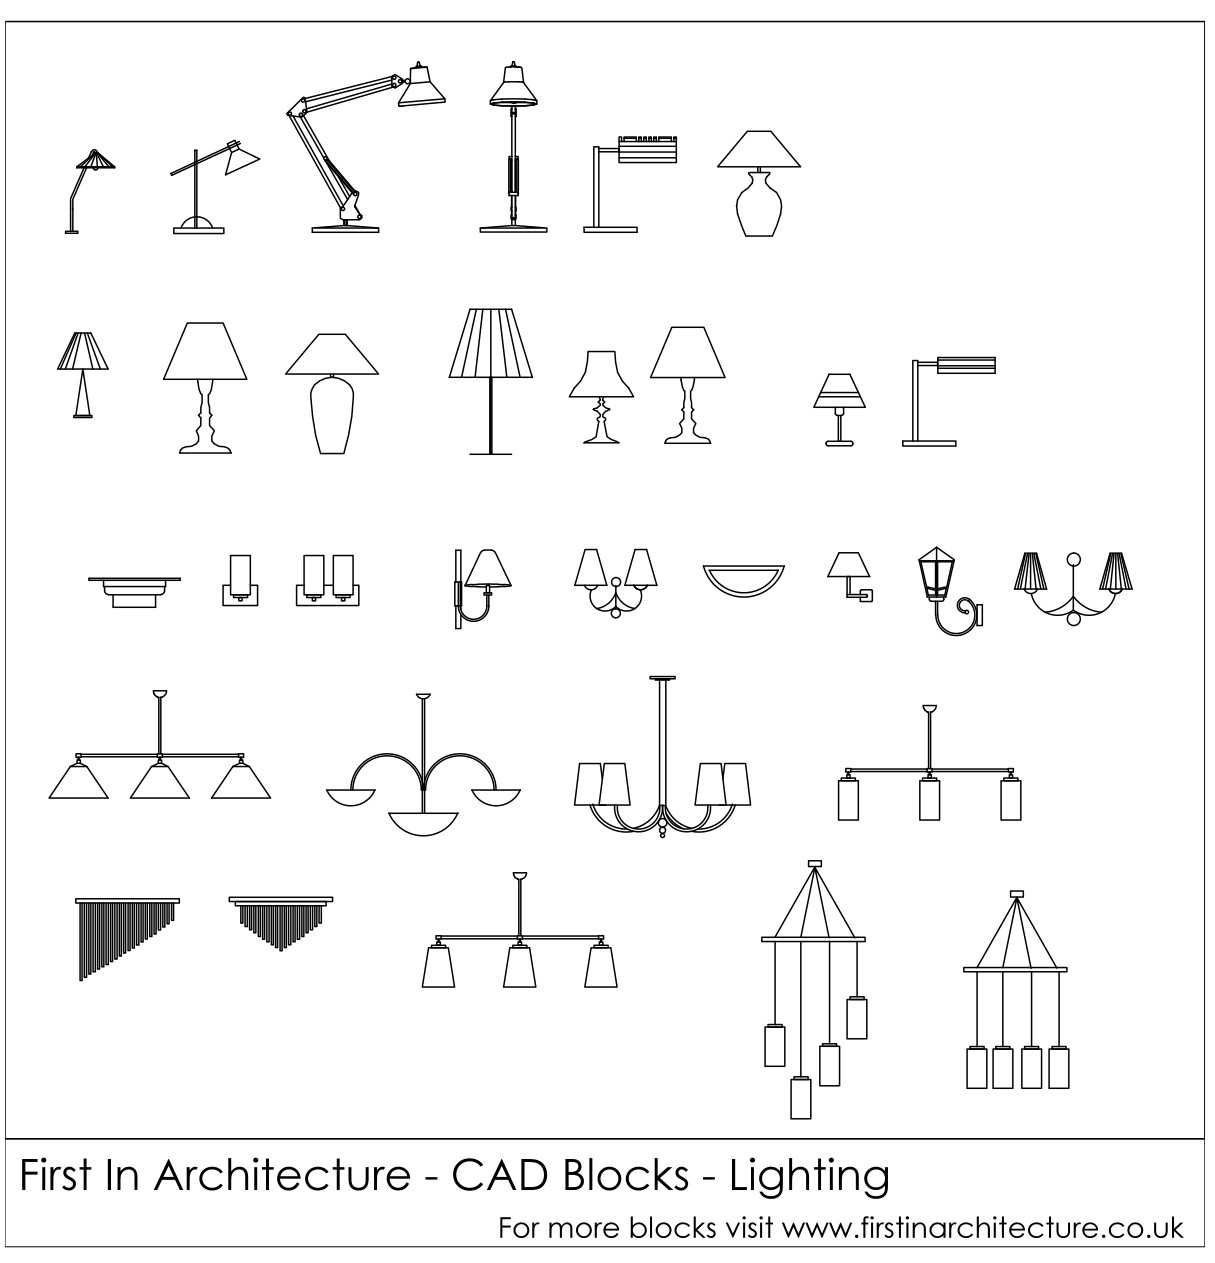 Free cad blocks lighting first in architecture lighting cad blocks arubaitofo Image collections